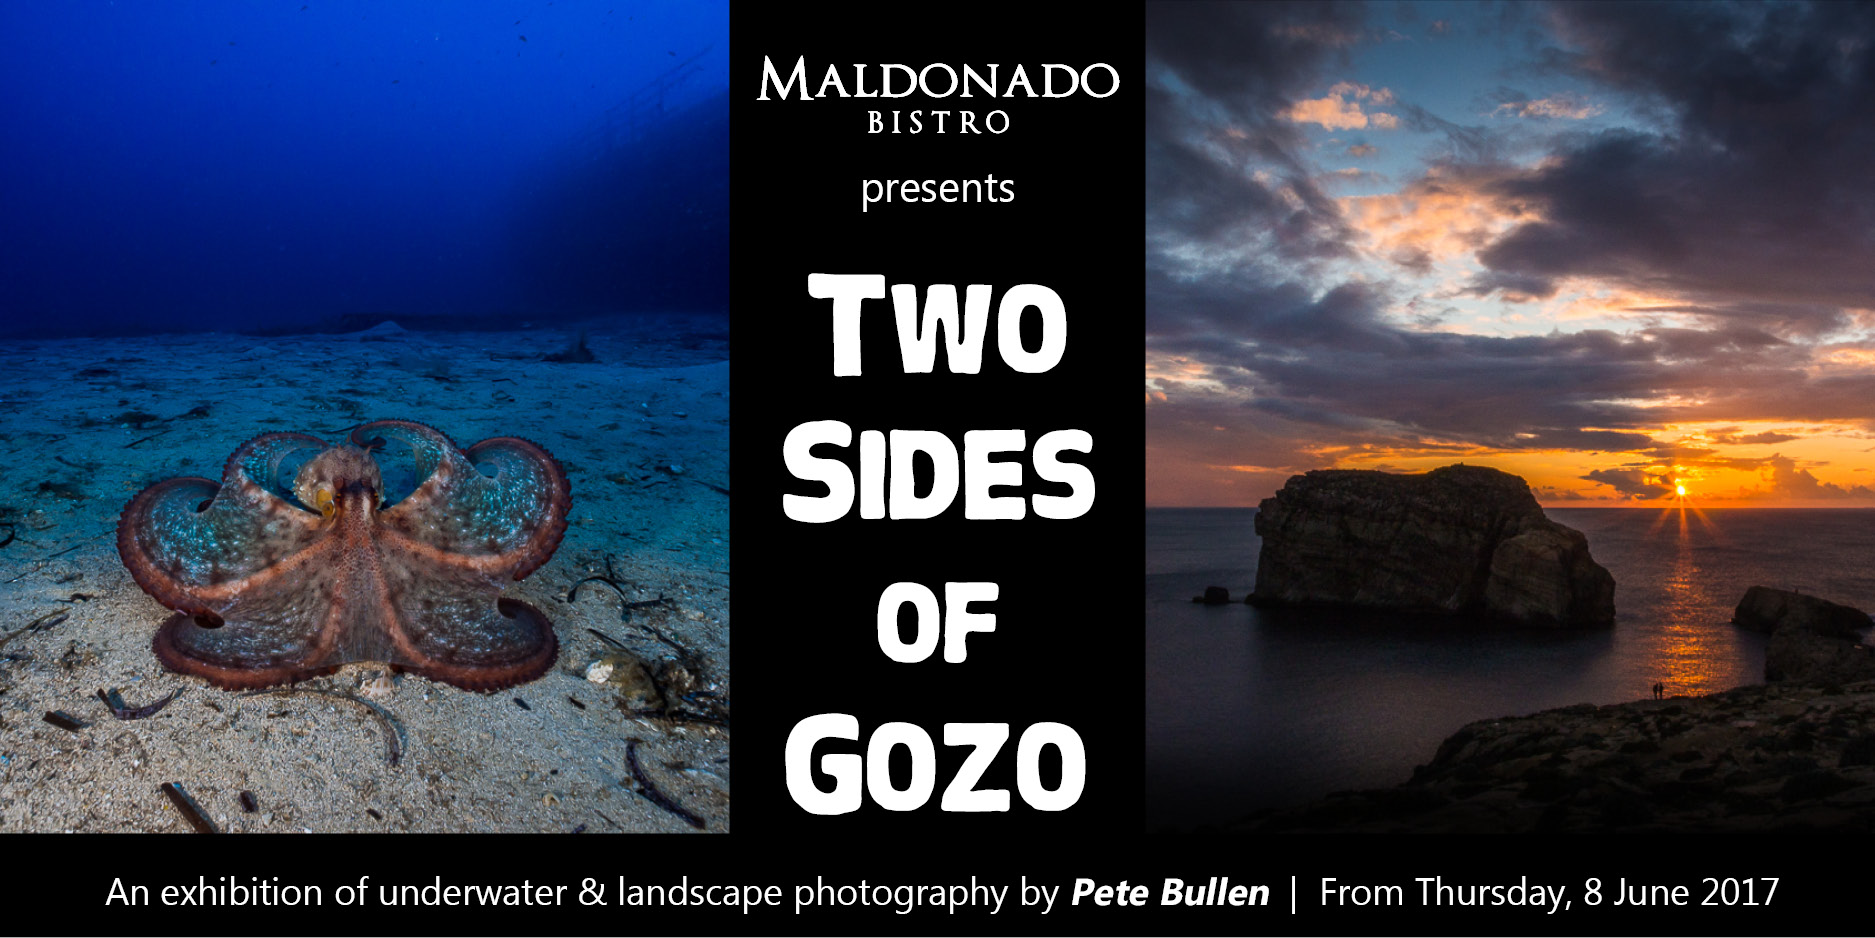 Two Sides of Gozo